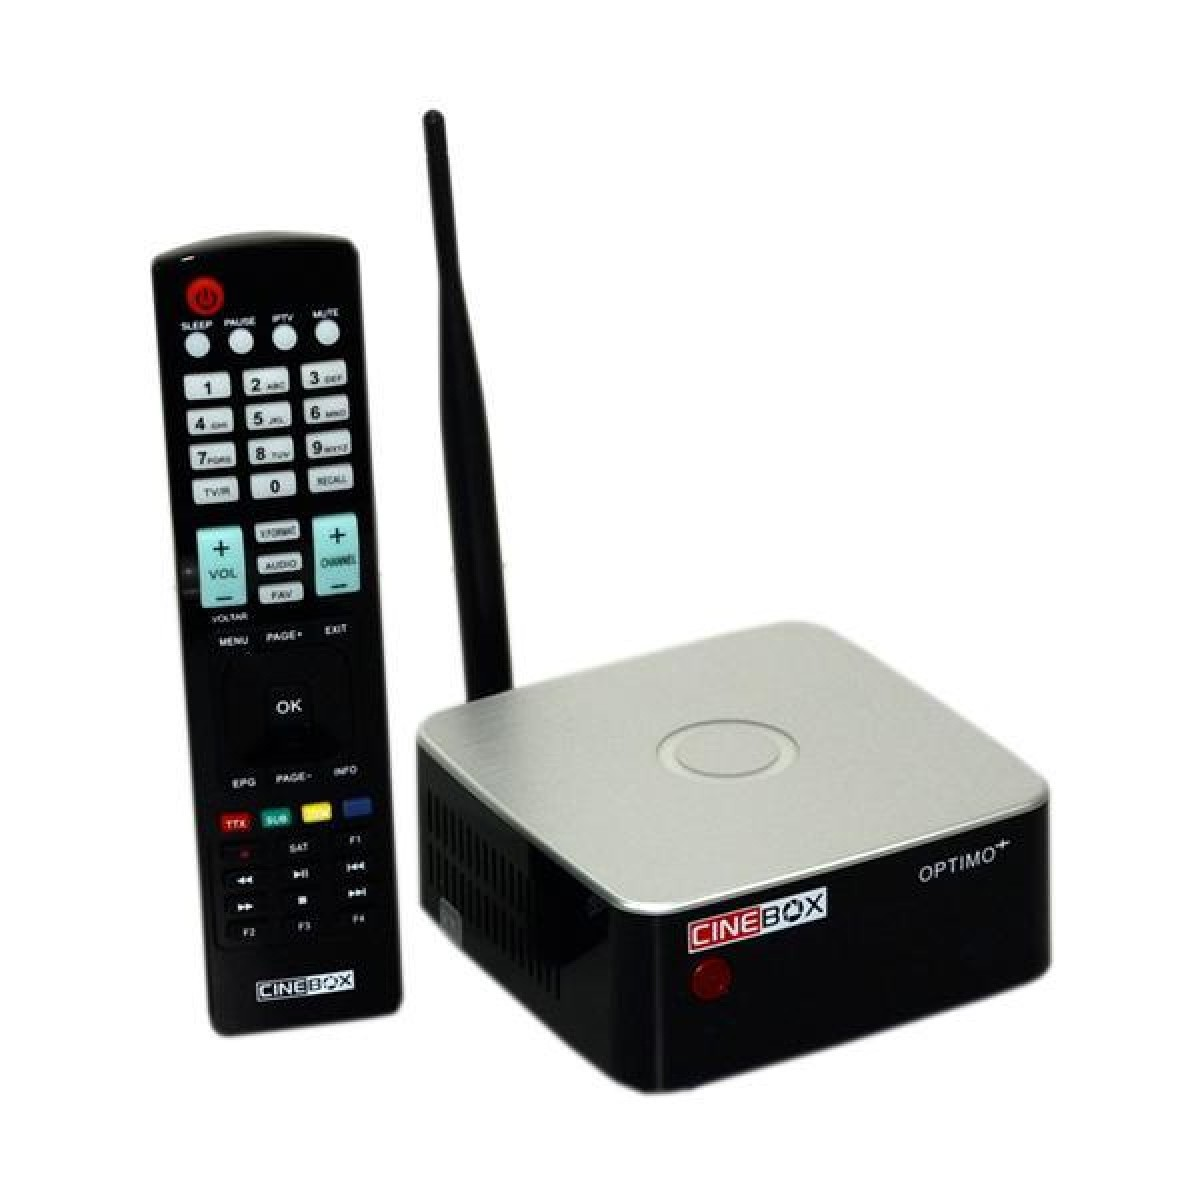 Receptor Cinebox Optimo + Plus Wi-Fi AC